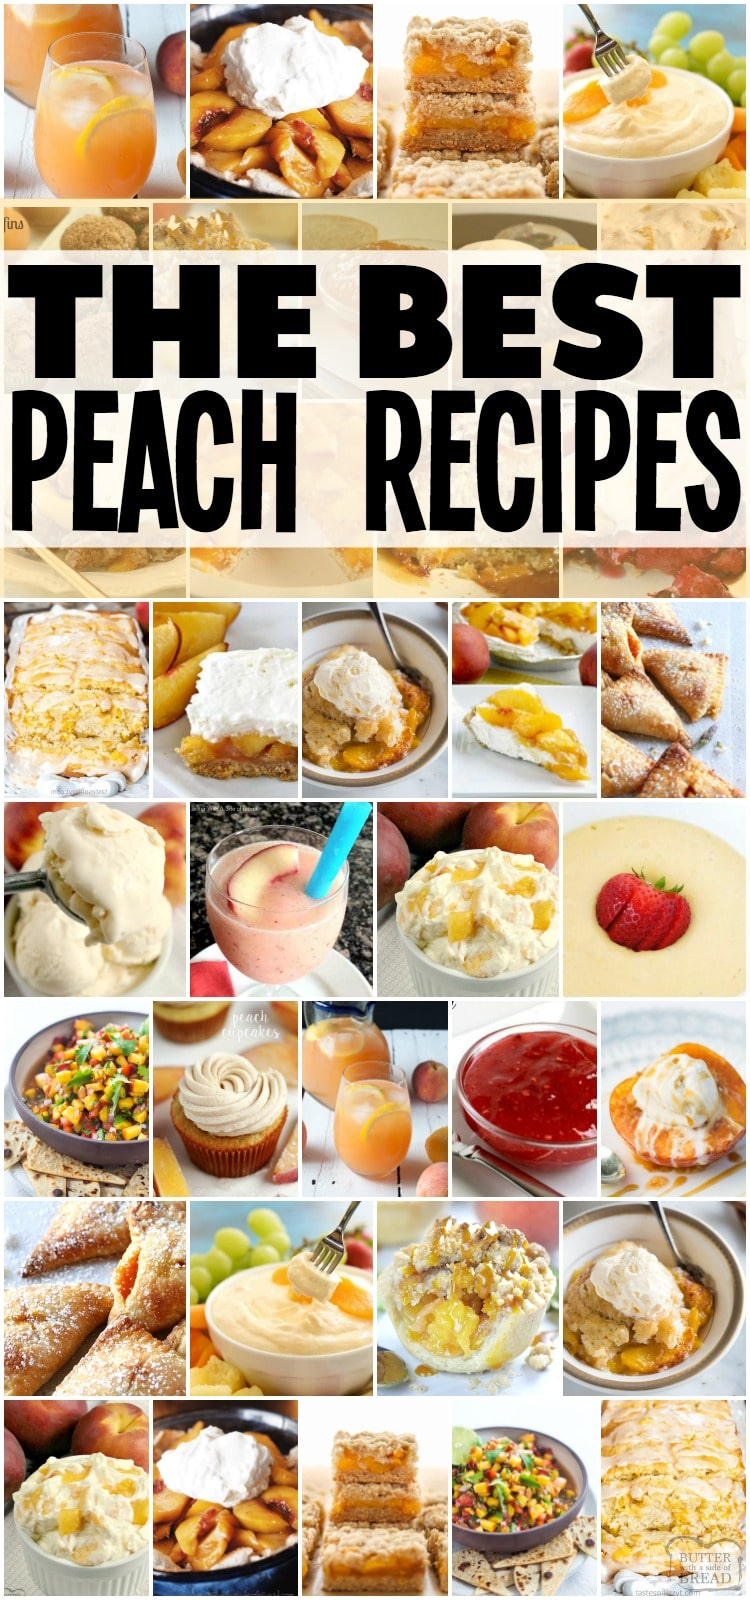 All the best peach recipes! Peach cobbler, peach crisp, peach pie, peaches and cream! All the good stuff. #peachrecipes #peachcobbler #peachcrisp #peachpie #peachesandcream #peachrecipes #recipefrom Butter With a Side of Bread